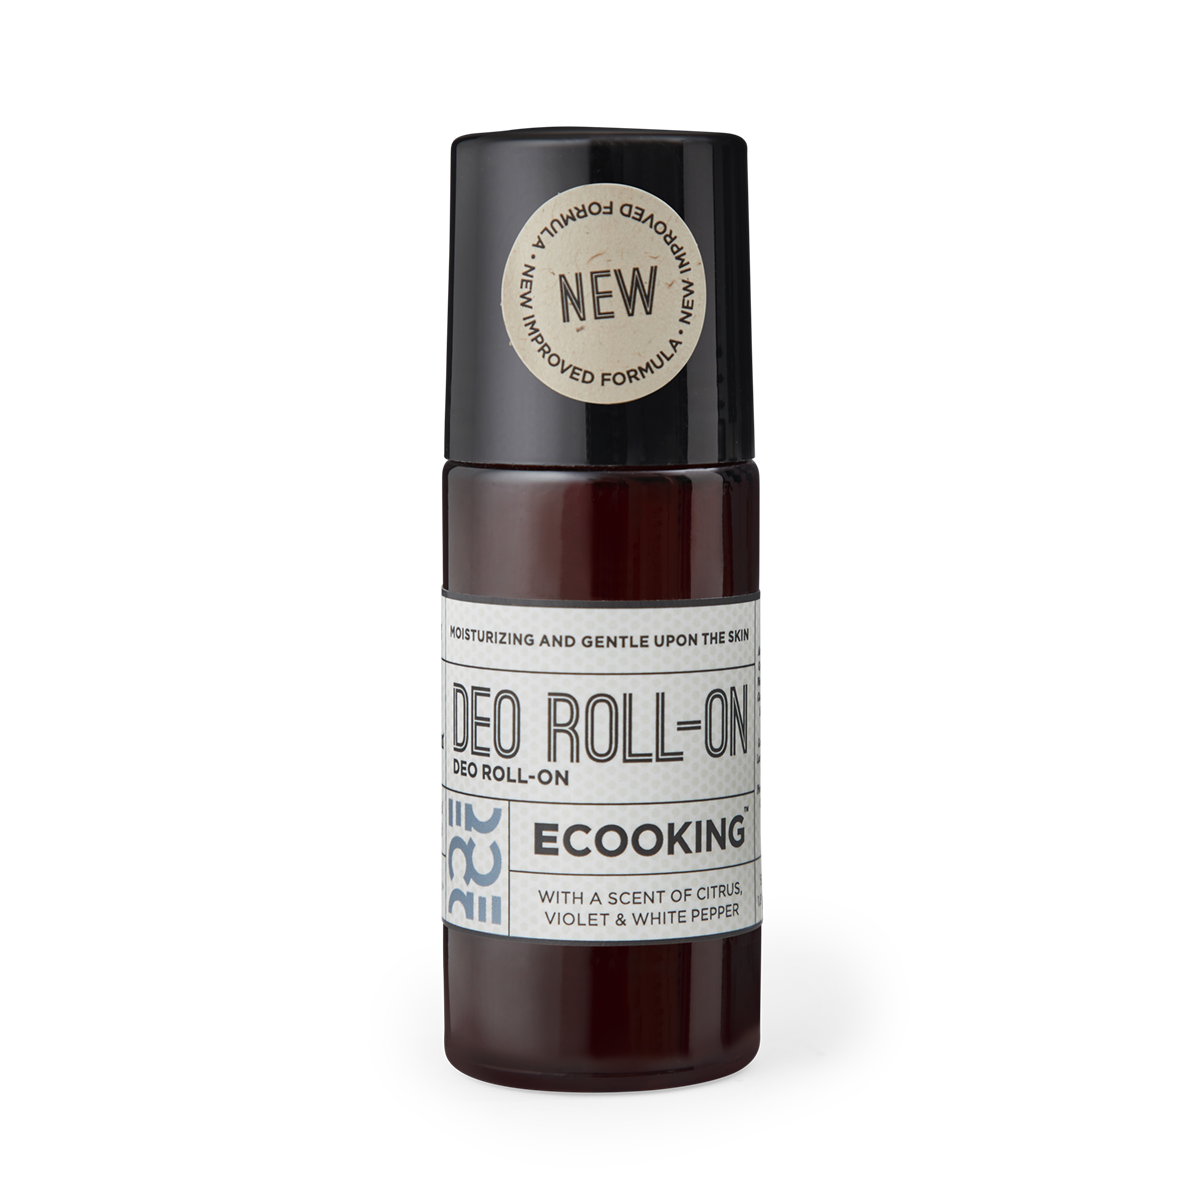 1200x1200_Deo_Roll-on_50ml